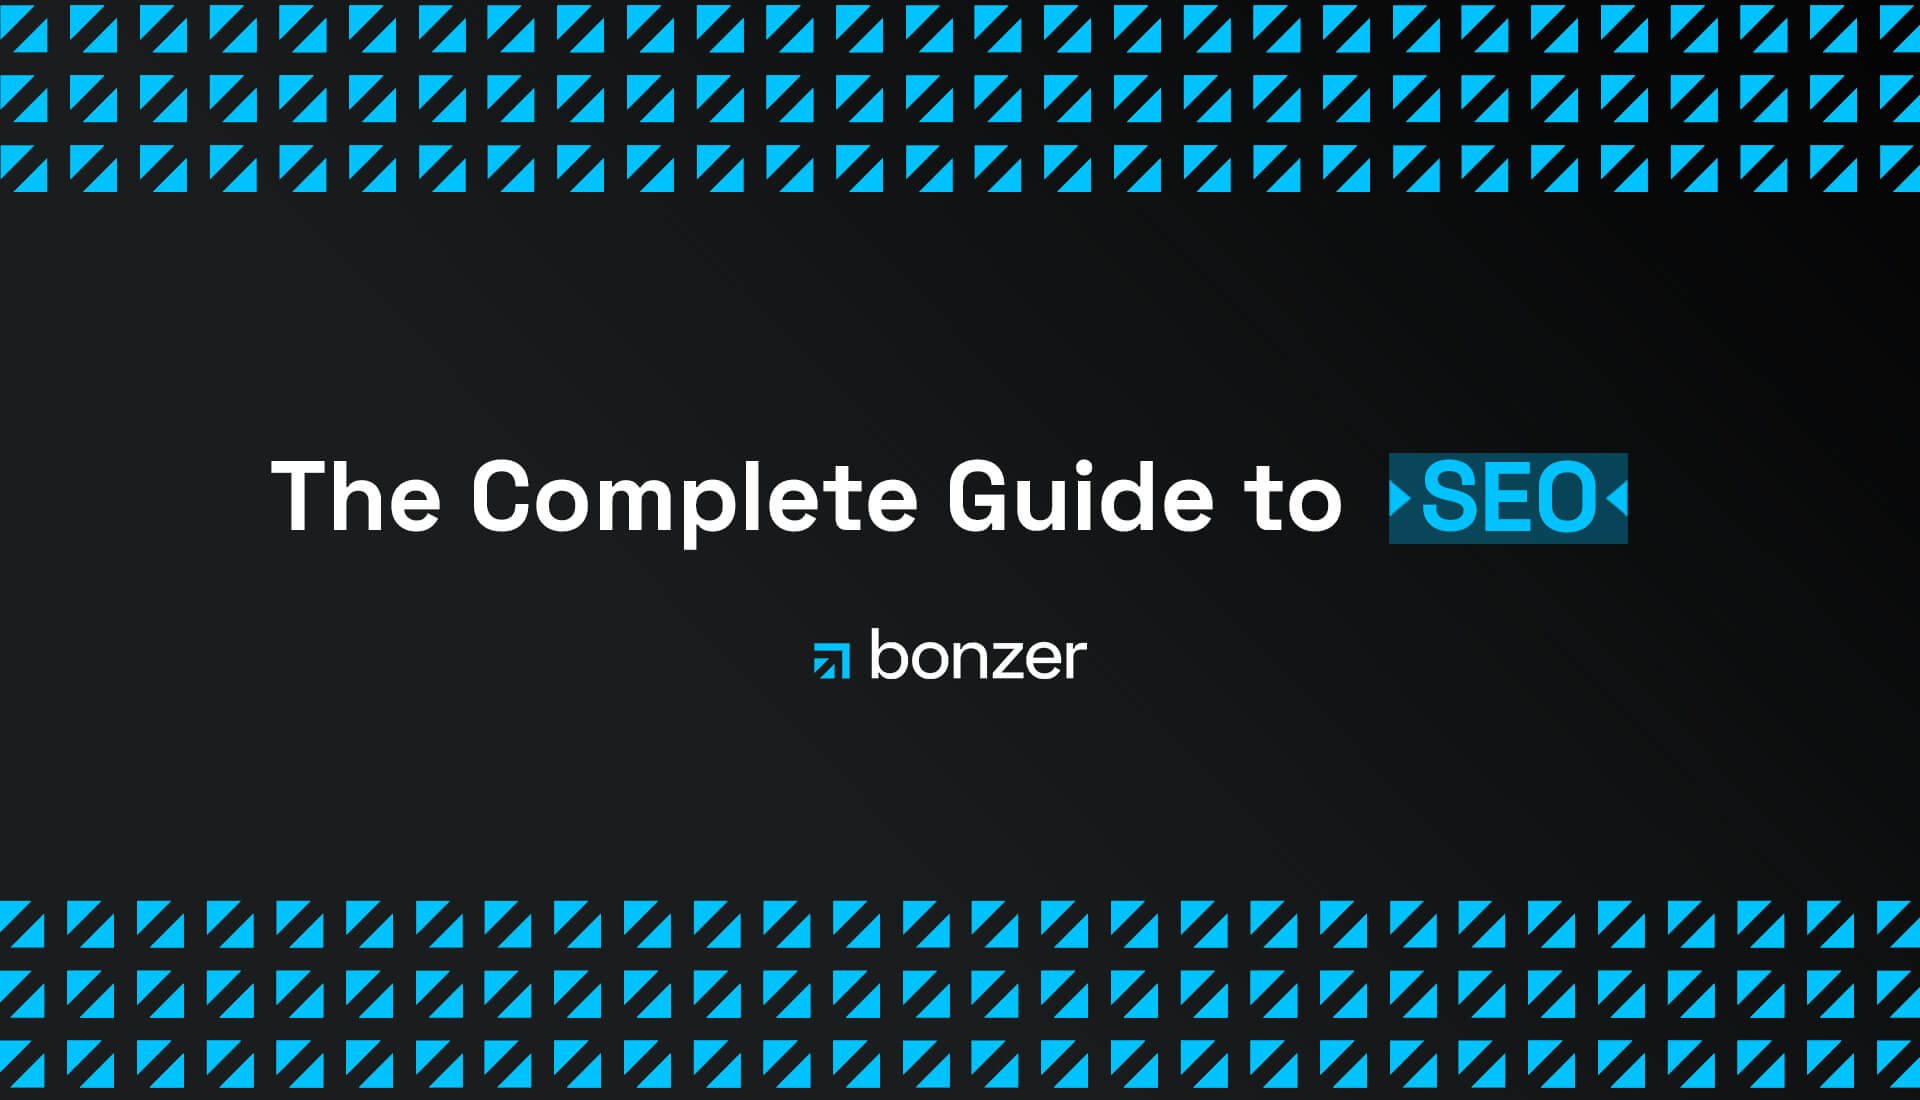 SEO: The Complete Guide to Search Engine Optimization